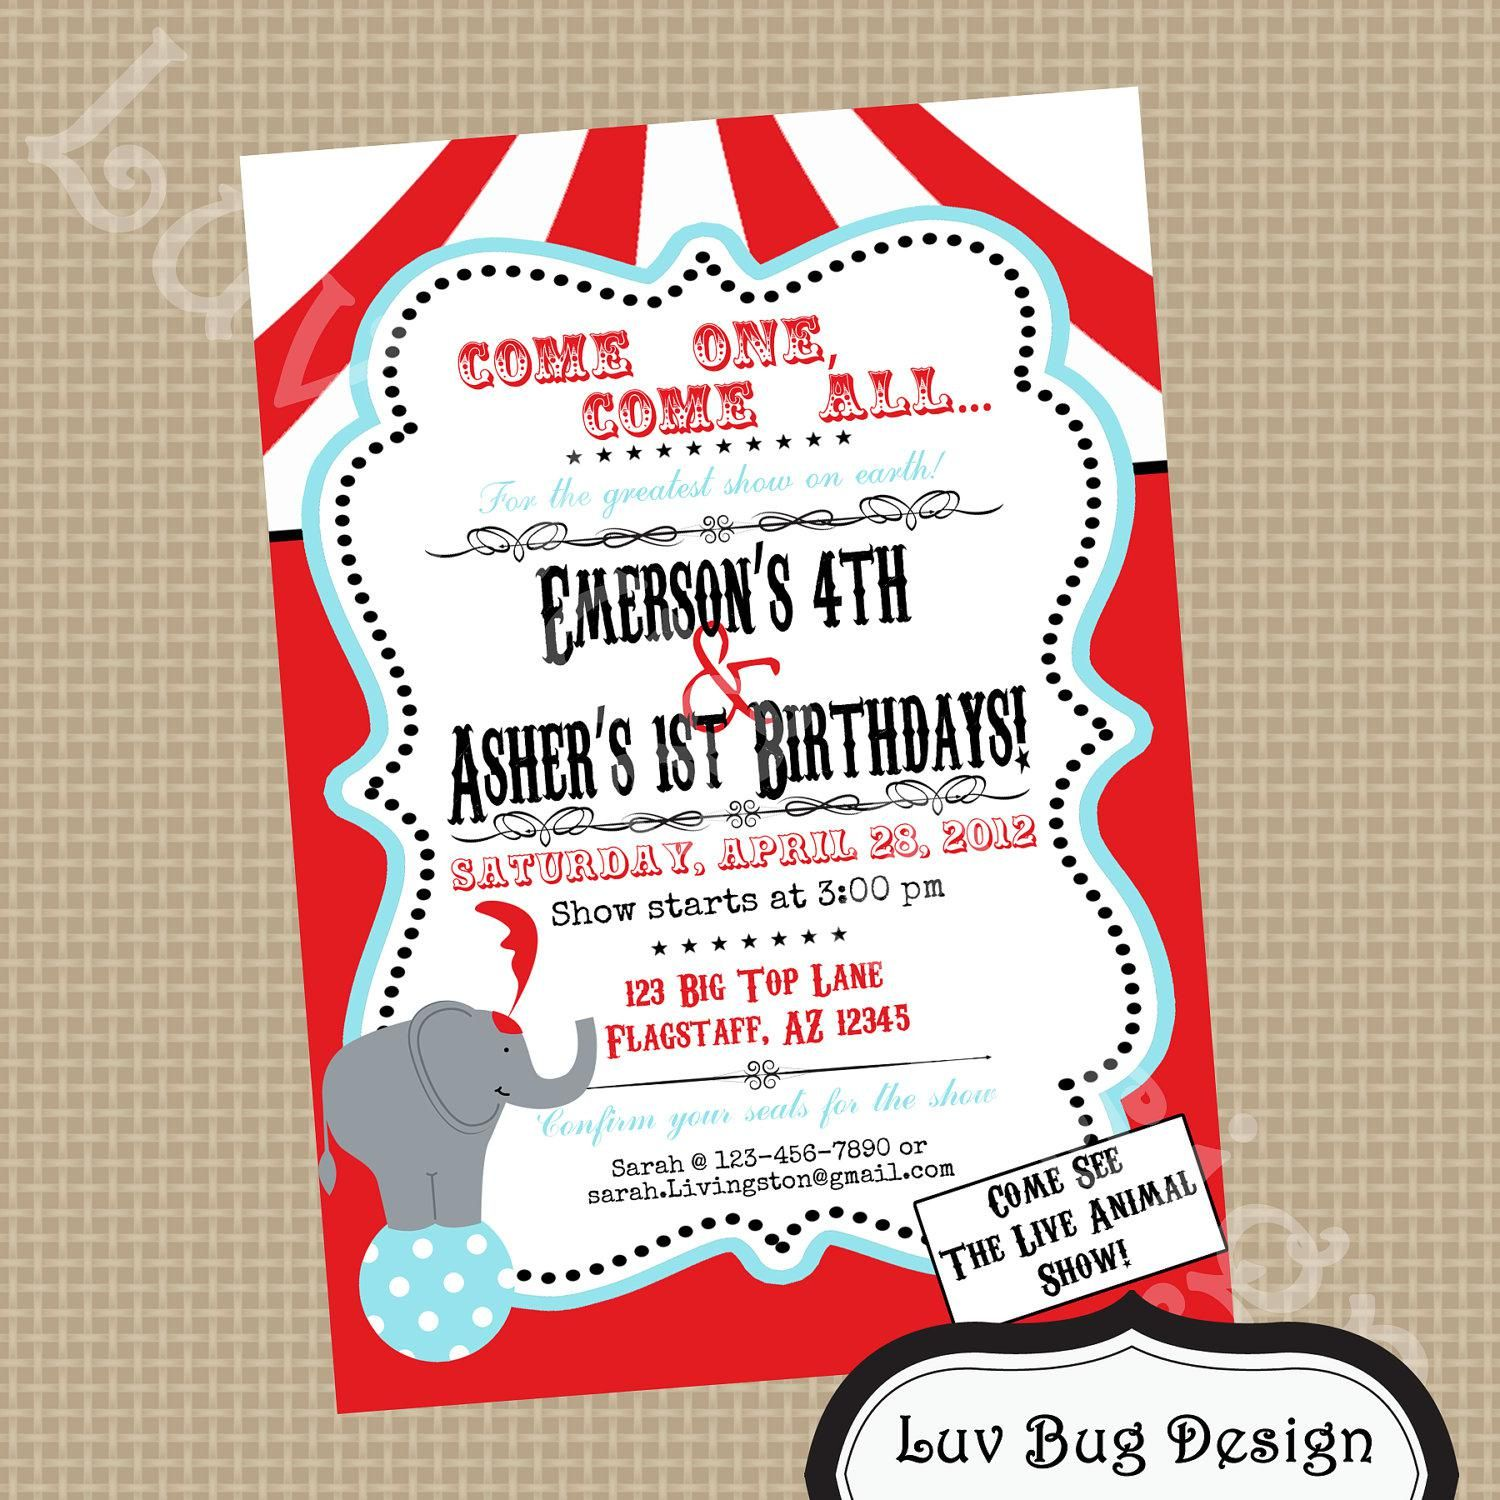 Carnival Party Invitations Free | Invitations Card by Silverlining ...